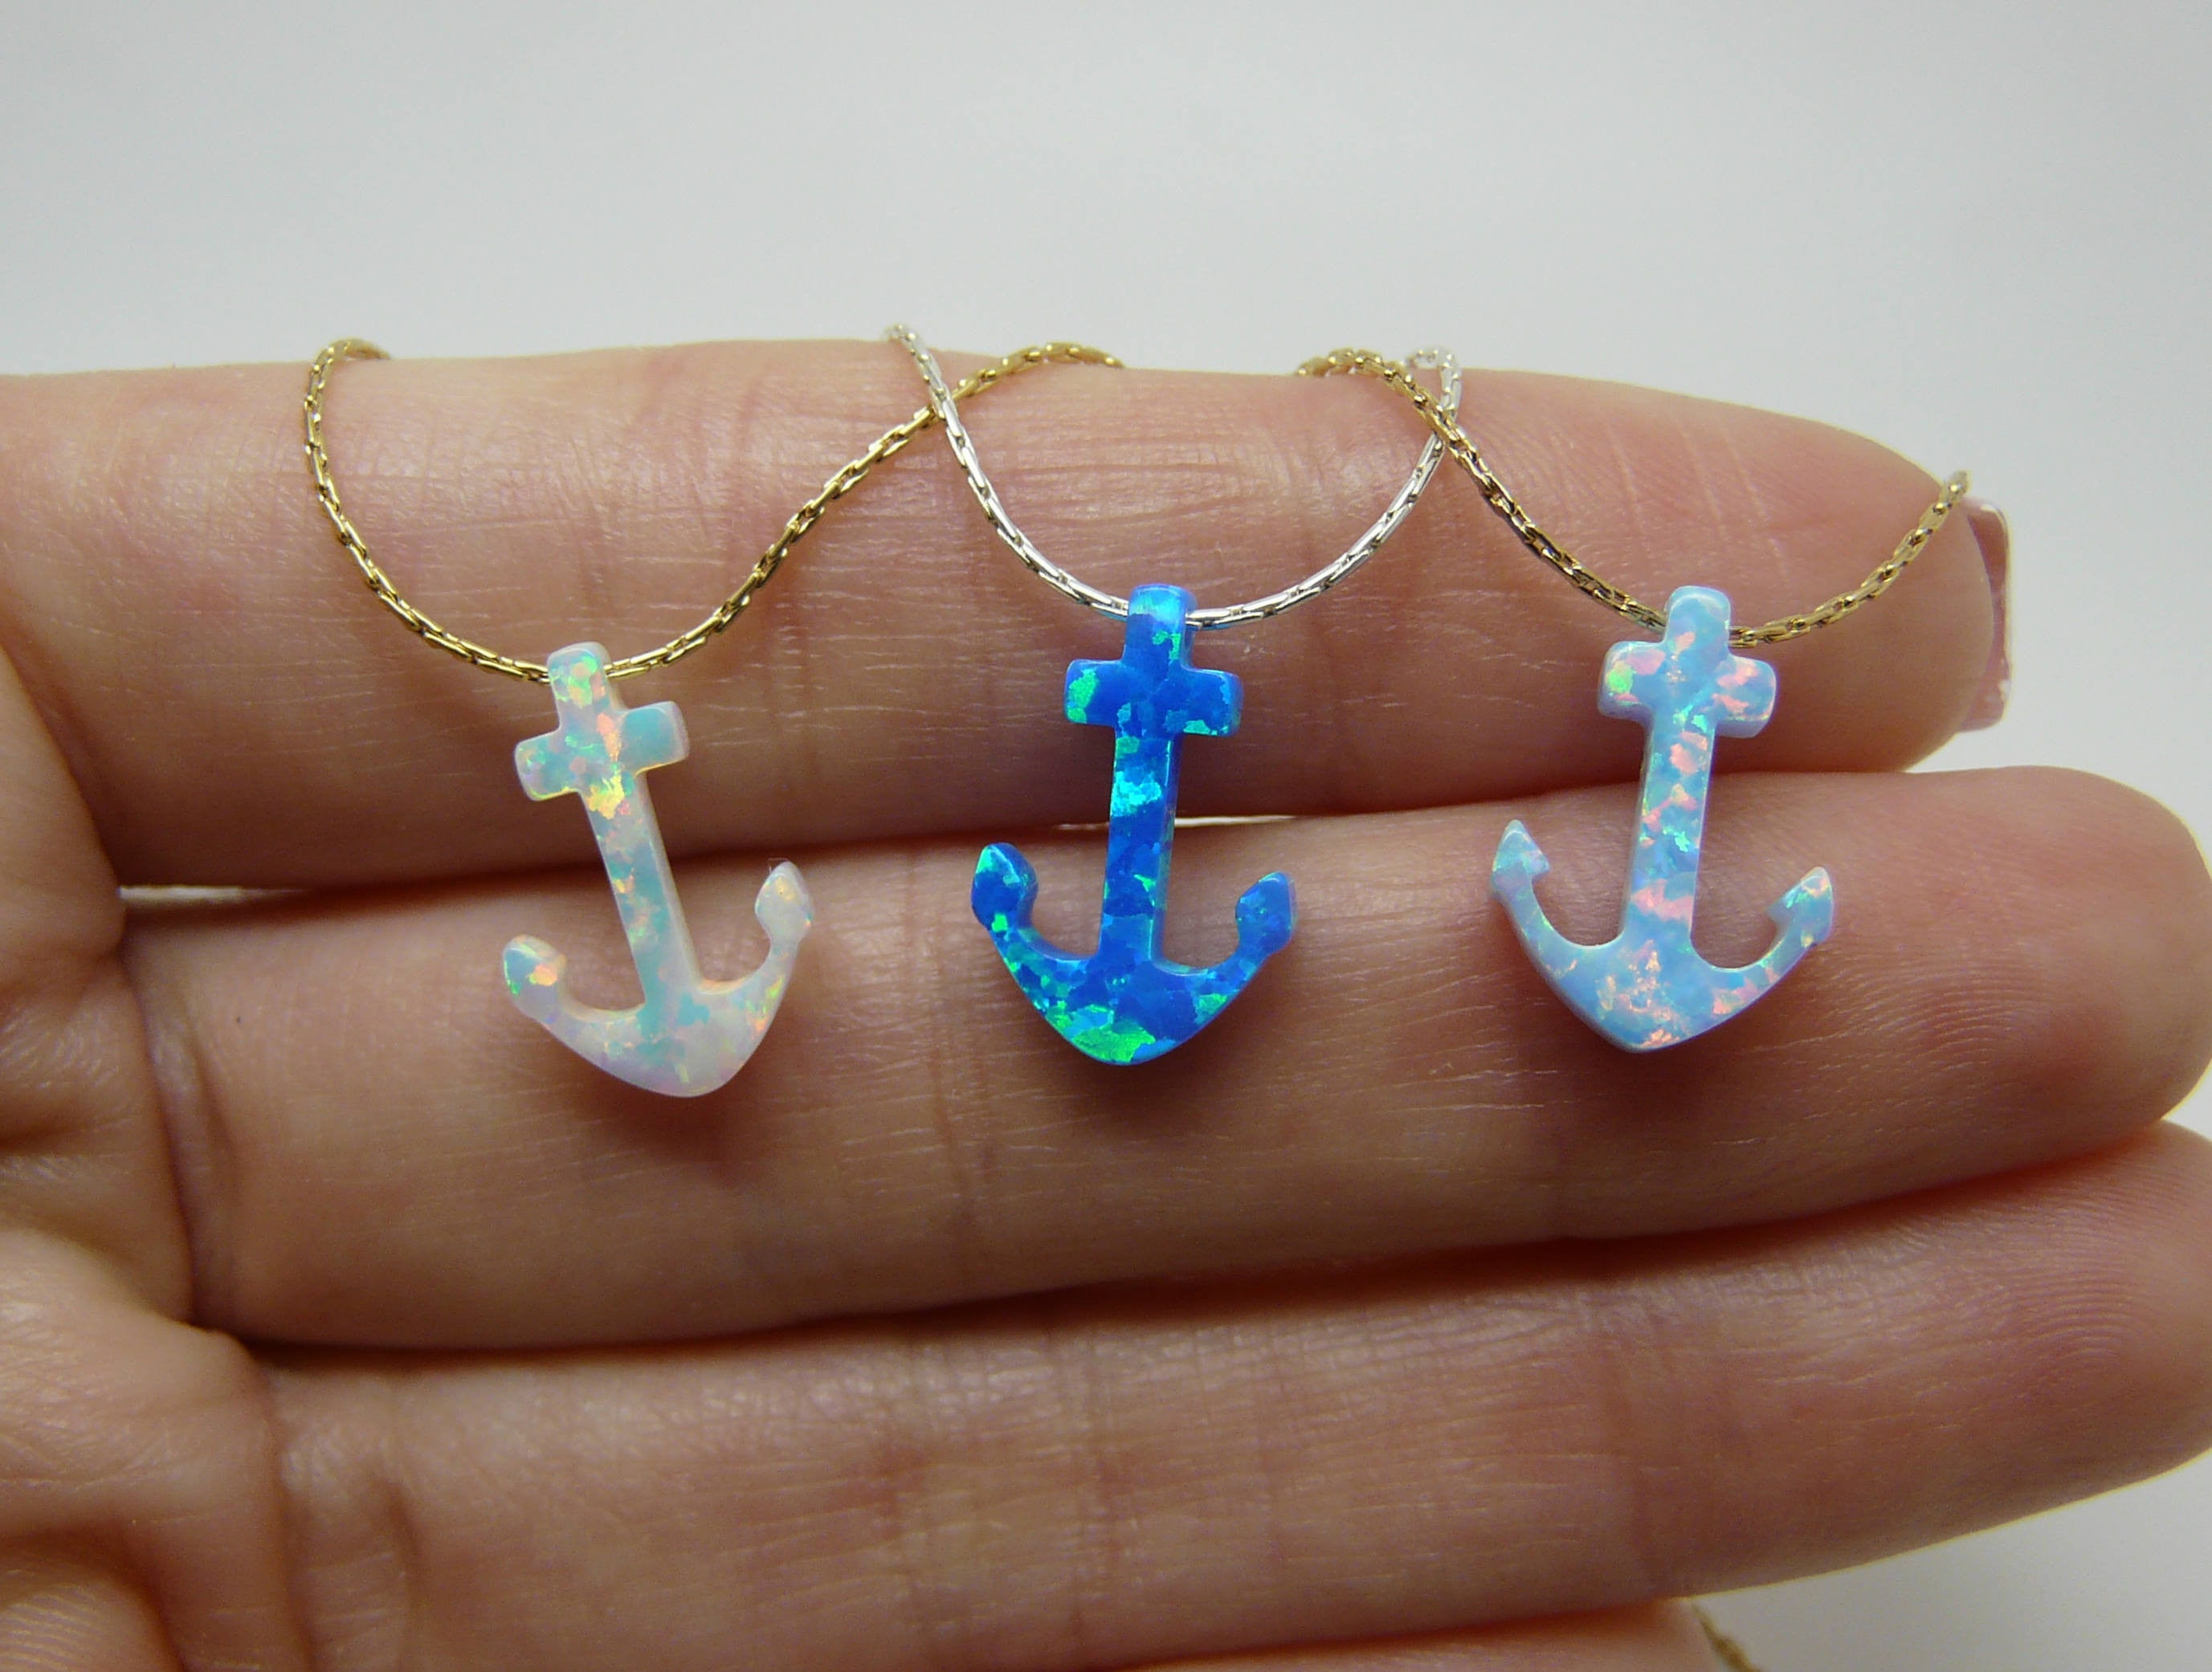 Opal Anchor necklace - OpaLandJewelry